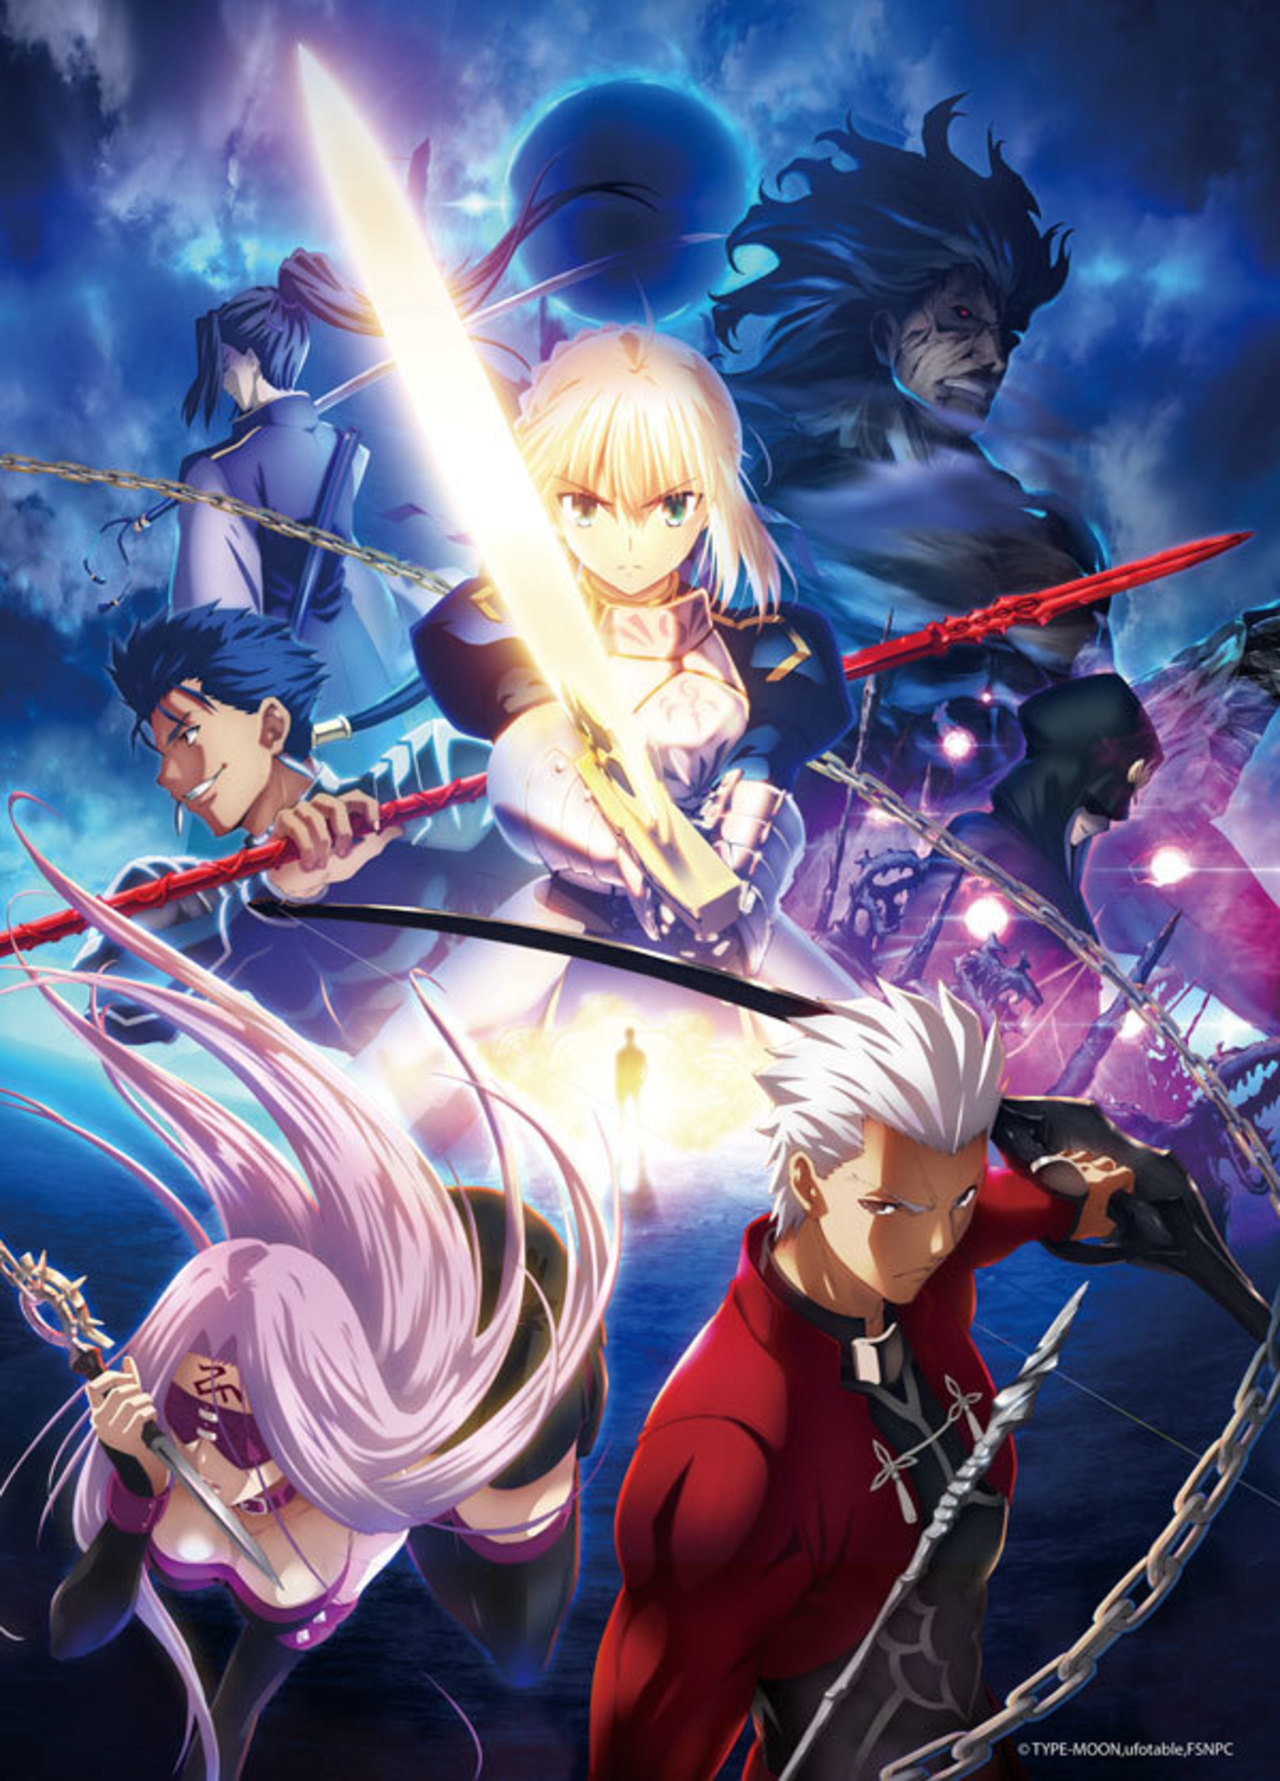 Fate/stay night: Unlimited Blade Works kapak